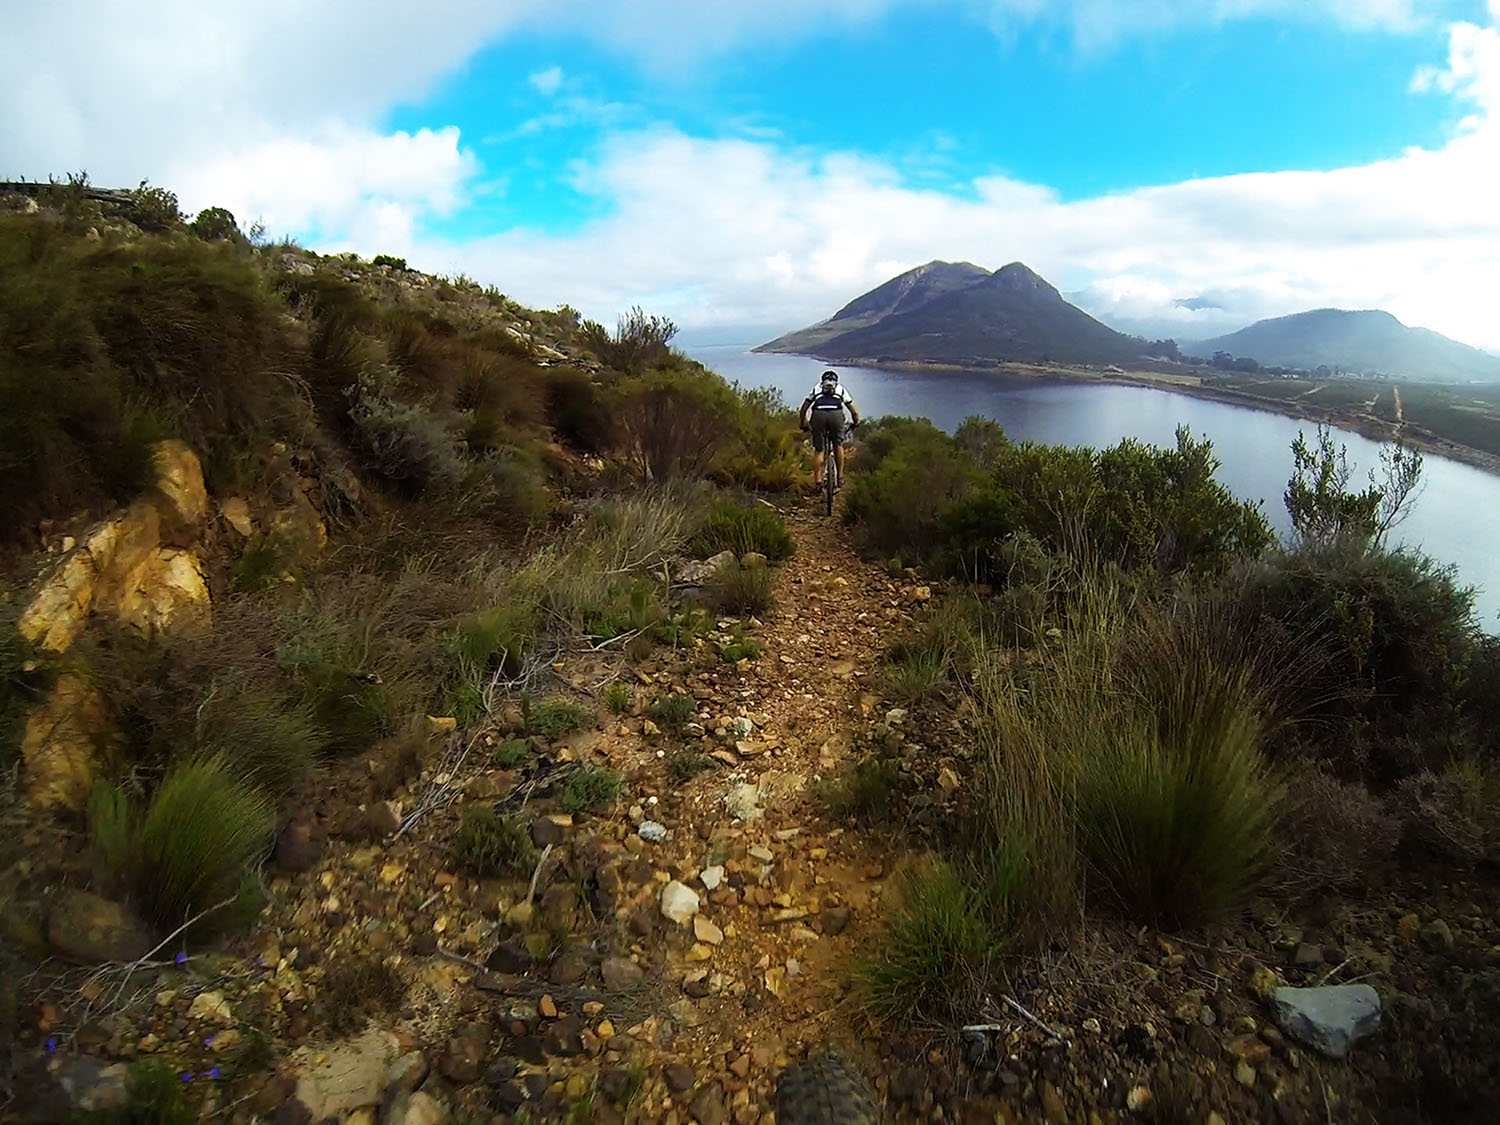 The Paarl region has become the mecca of mountain biking for many riders. Photo: Supplied